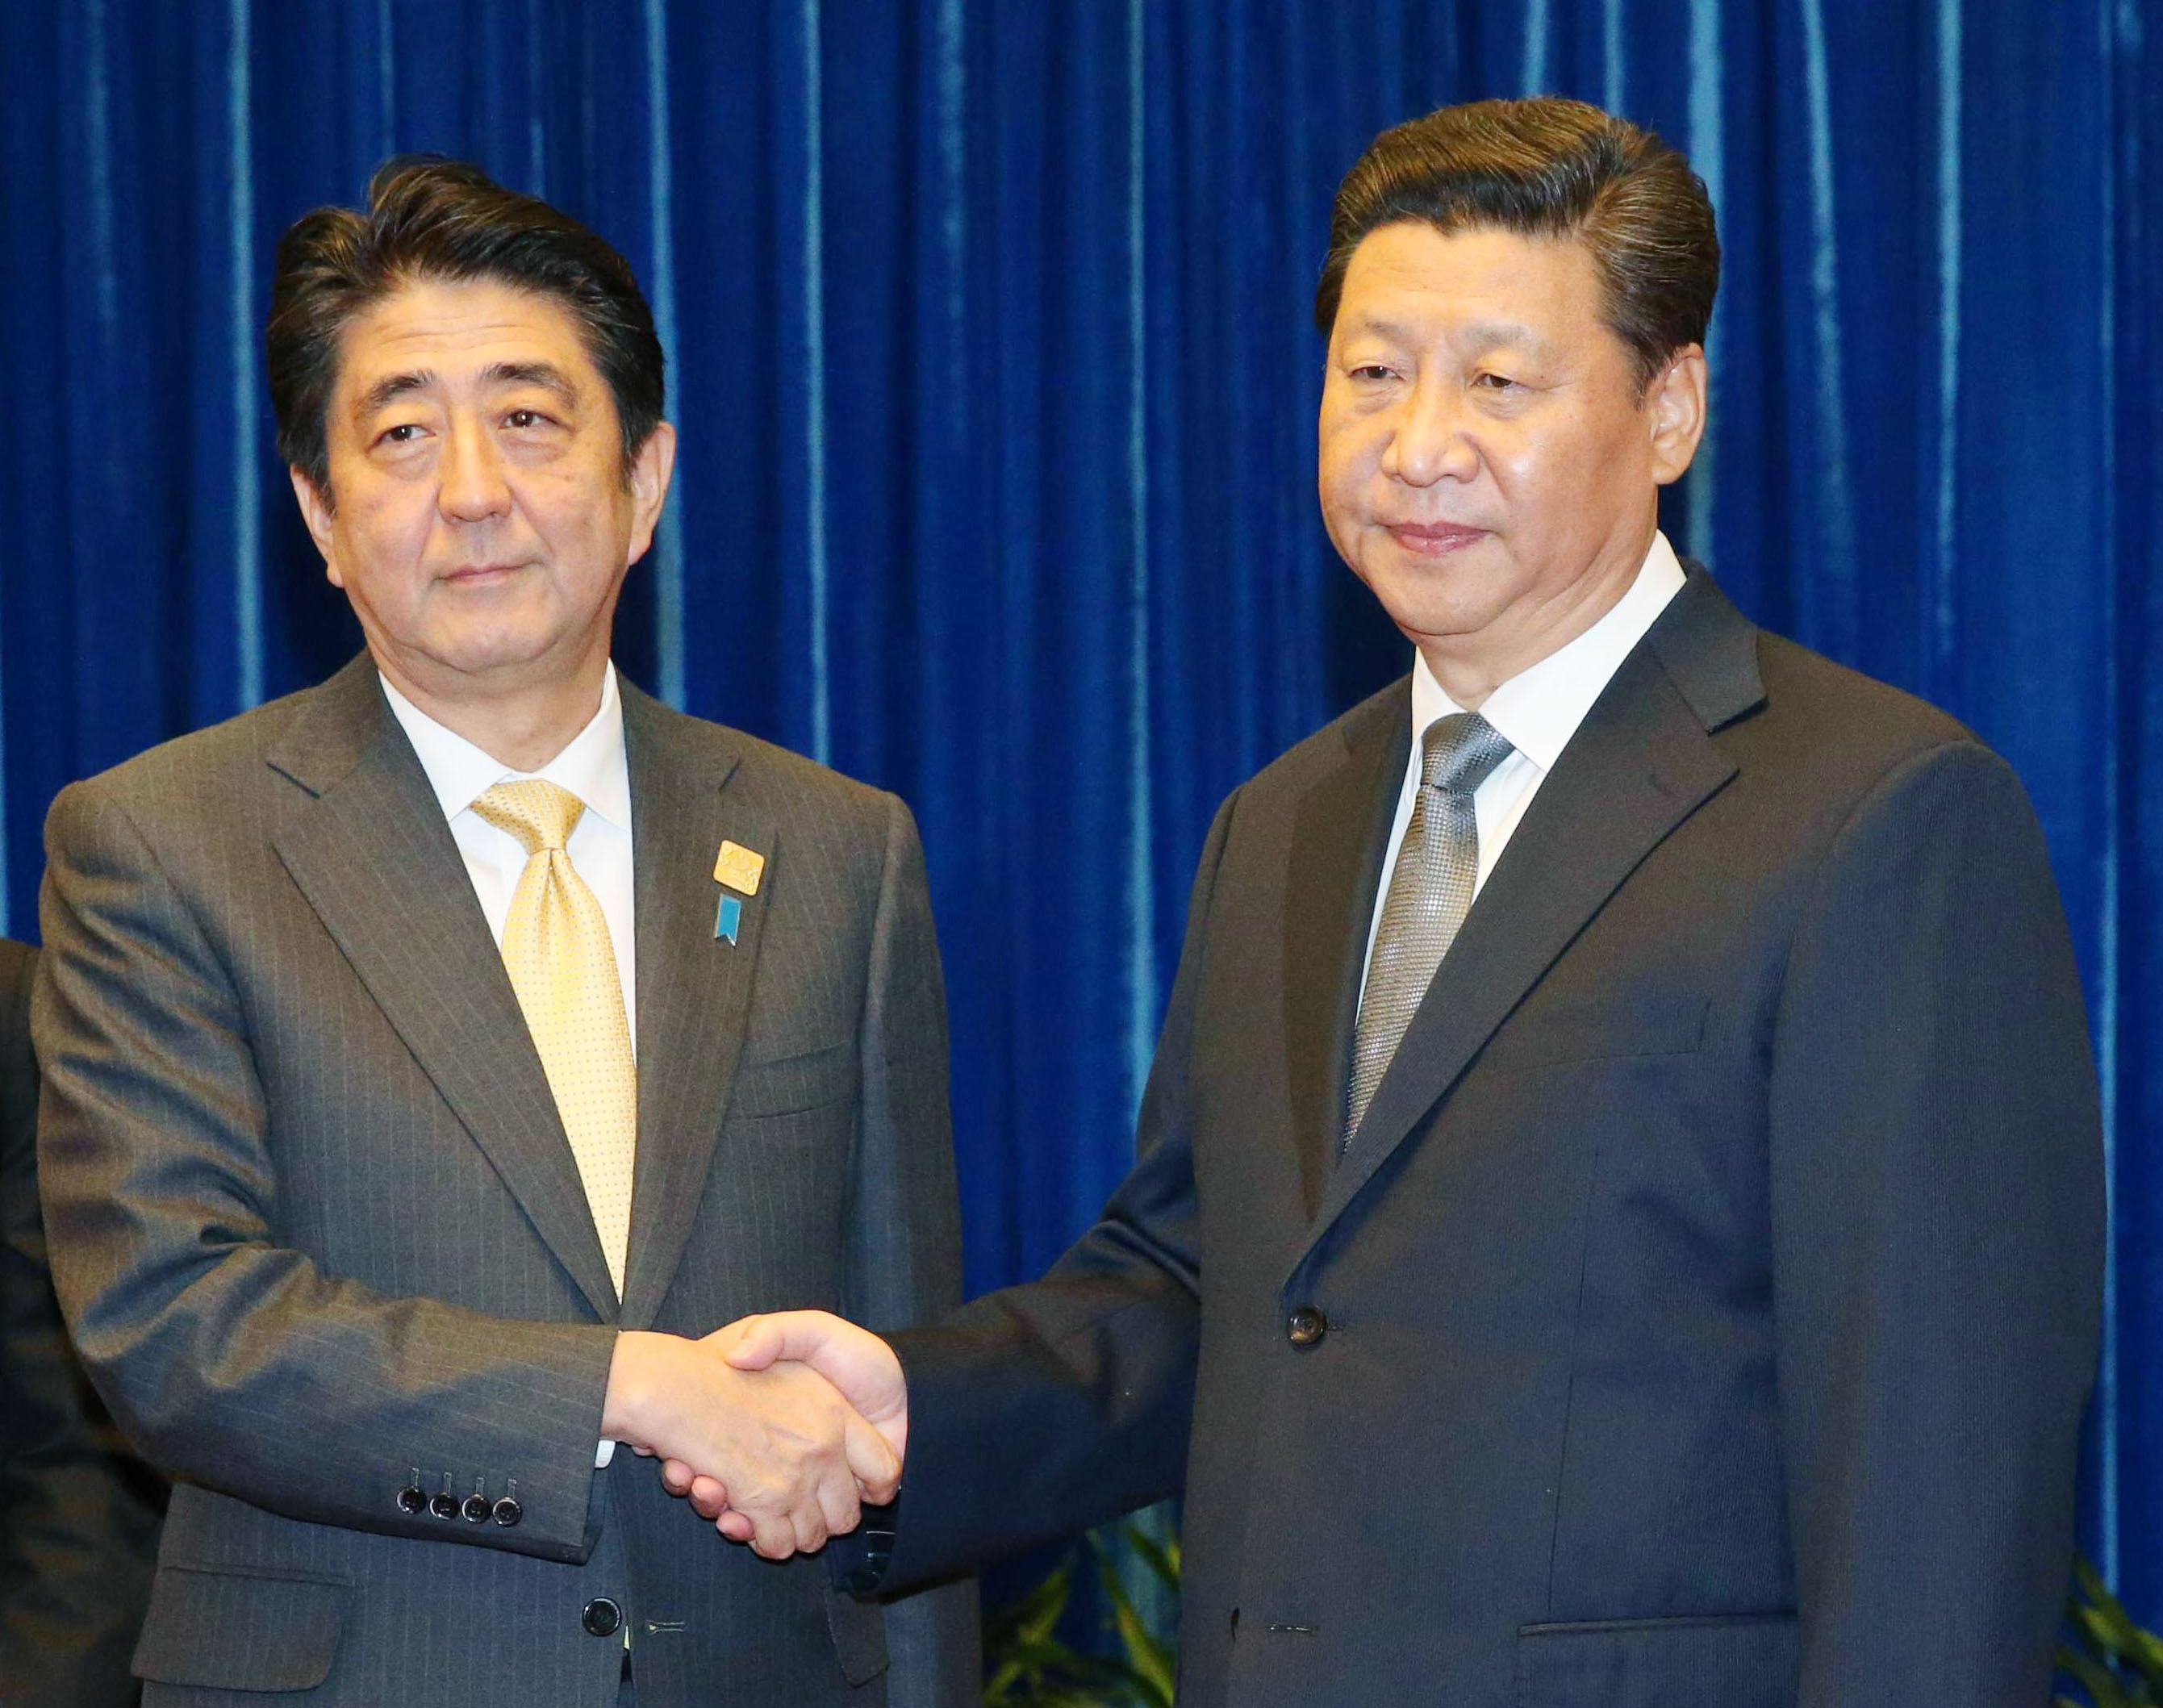 Prime Minister Shinzo Abe and Chinese President Xi Jinping shake hands in November before talks in Beijing. The long-delayed meeting marked a breakthrough in bilateral ties that froze after Japan effectively nationalized the Senkaku Islands. | KYODO